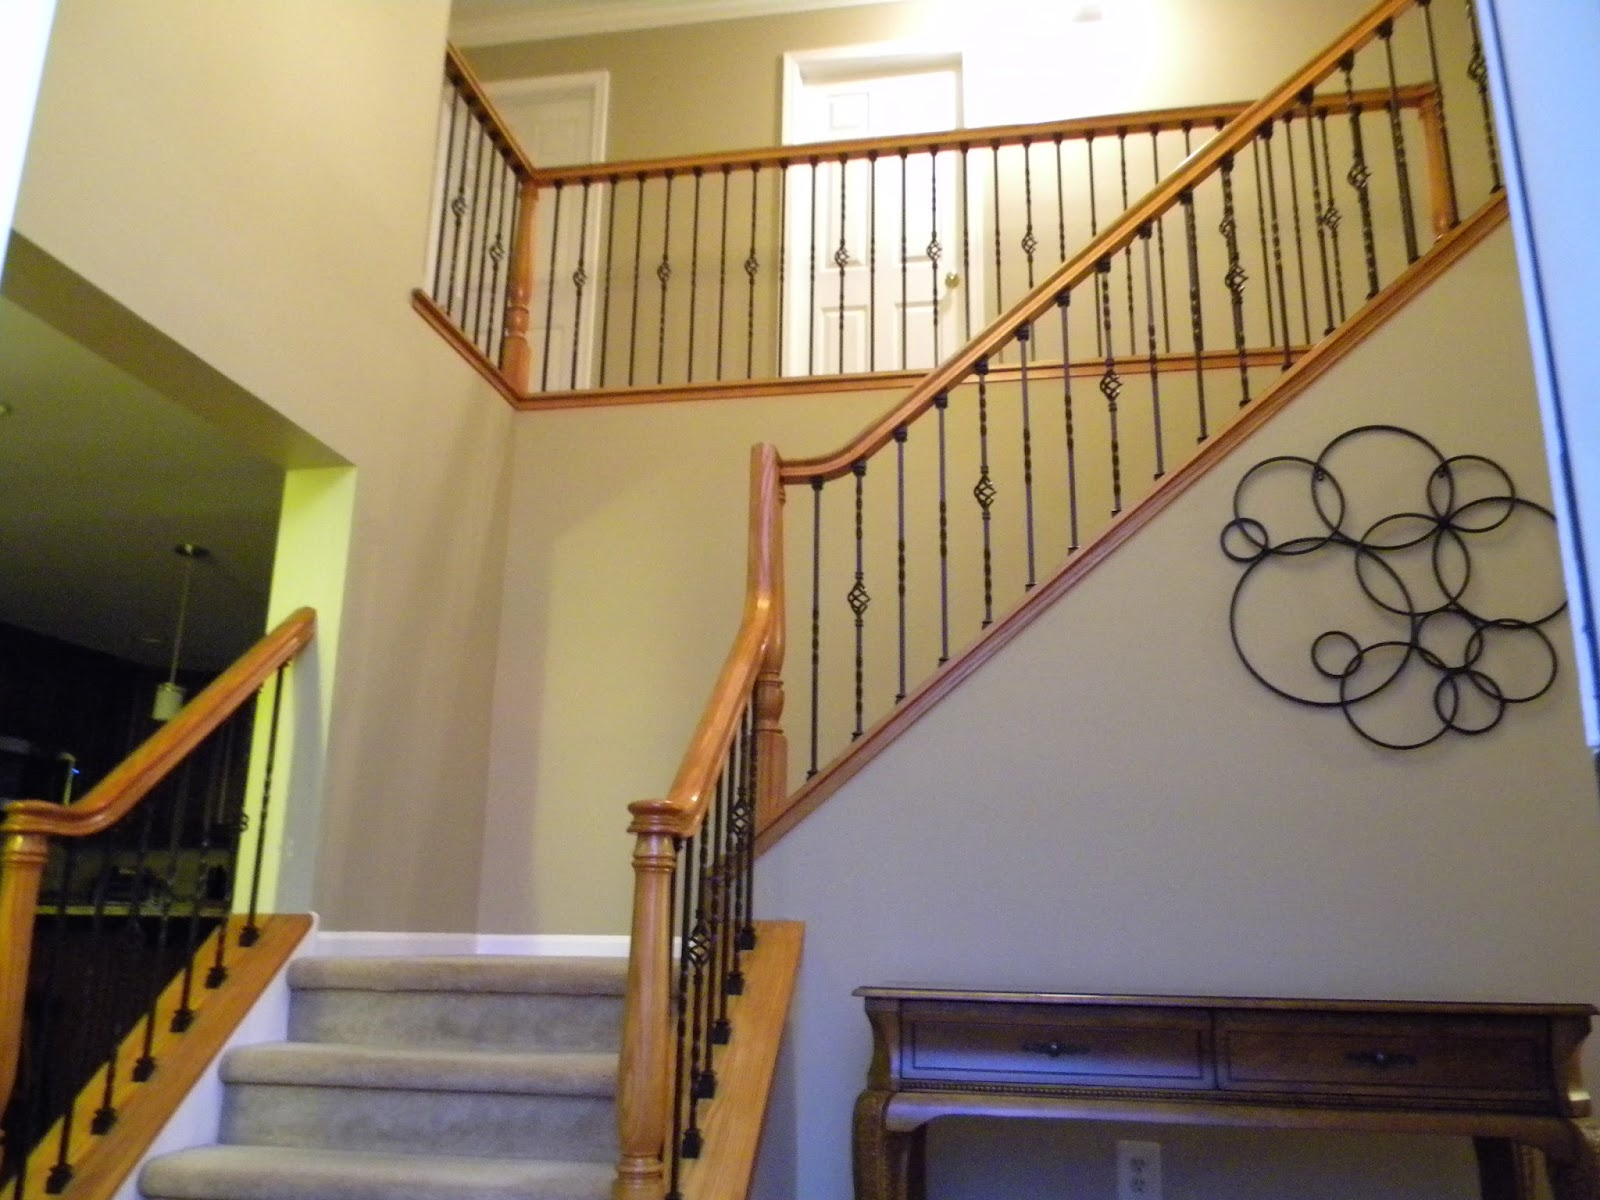 Superior Your Local Staircase Contractor And Iron Baluster Specialist In Morrisville  PA. This Was A Very Clean Job. Some Jobs Are Easier Than Others.